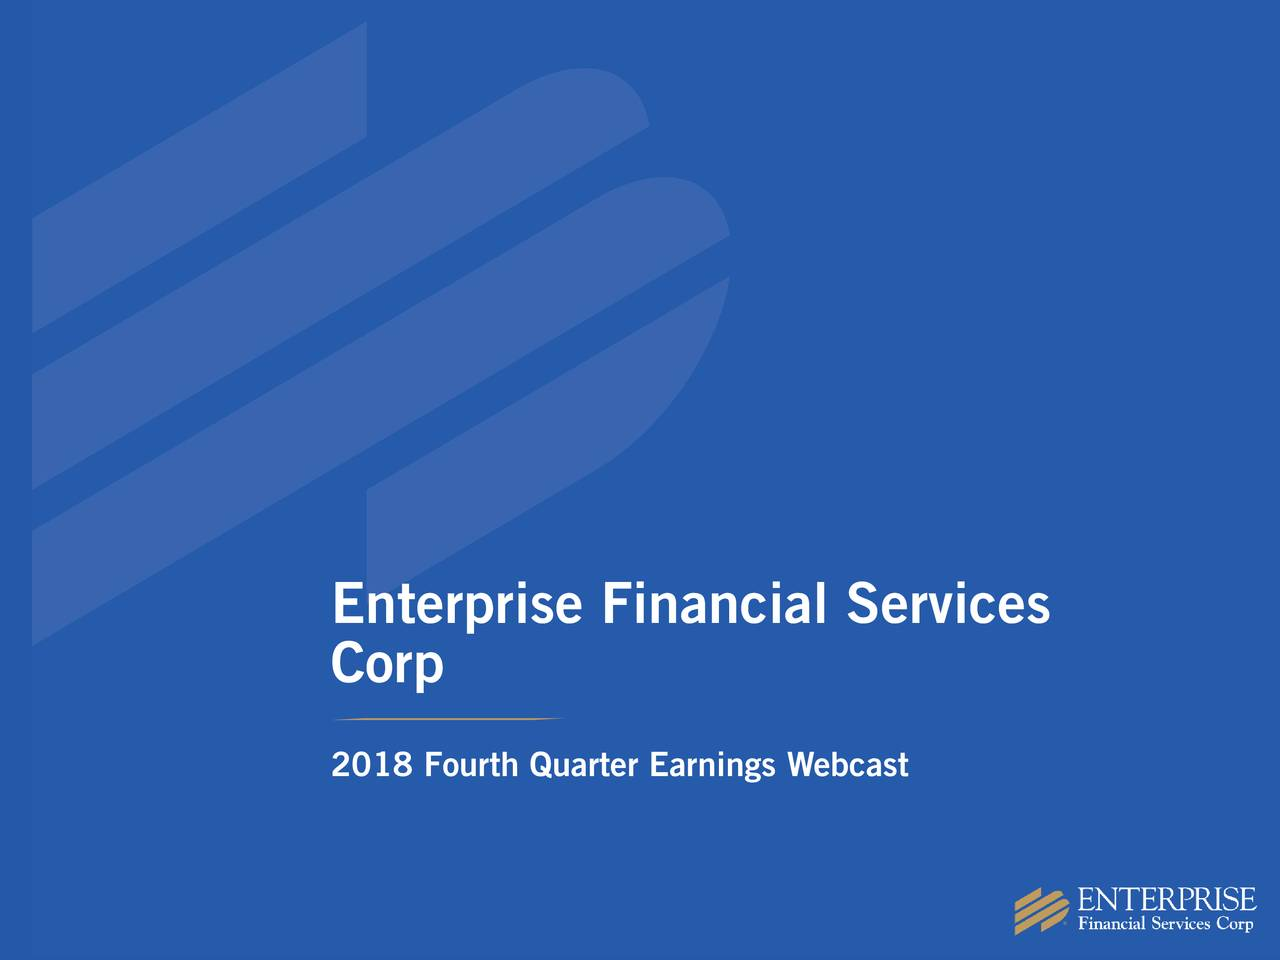 Corp 2018 Fourth Quarter Earnings Webcast